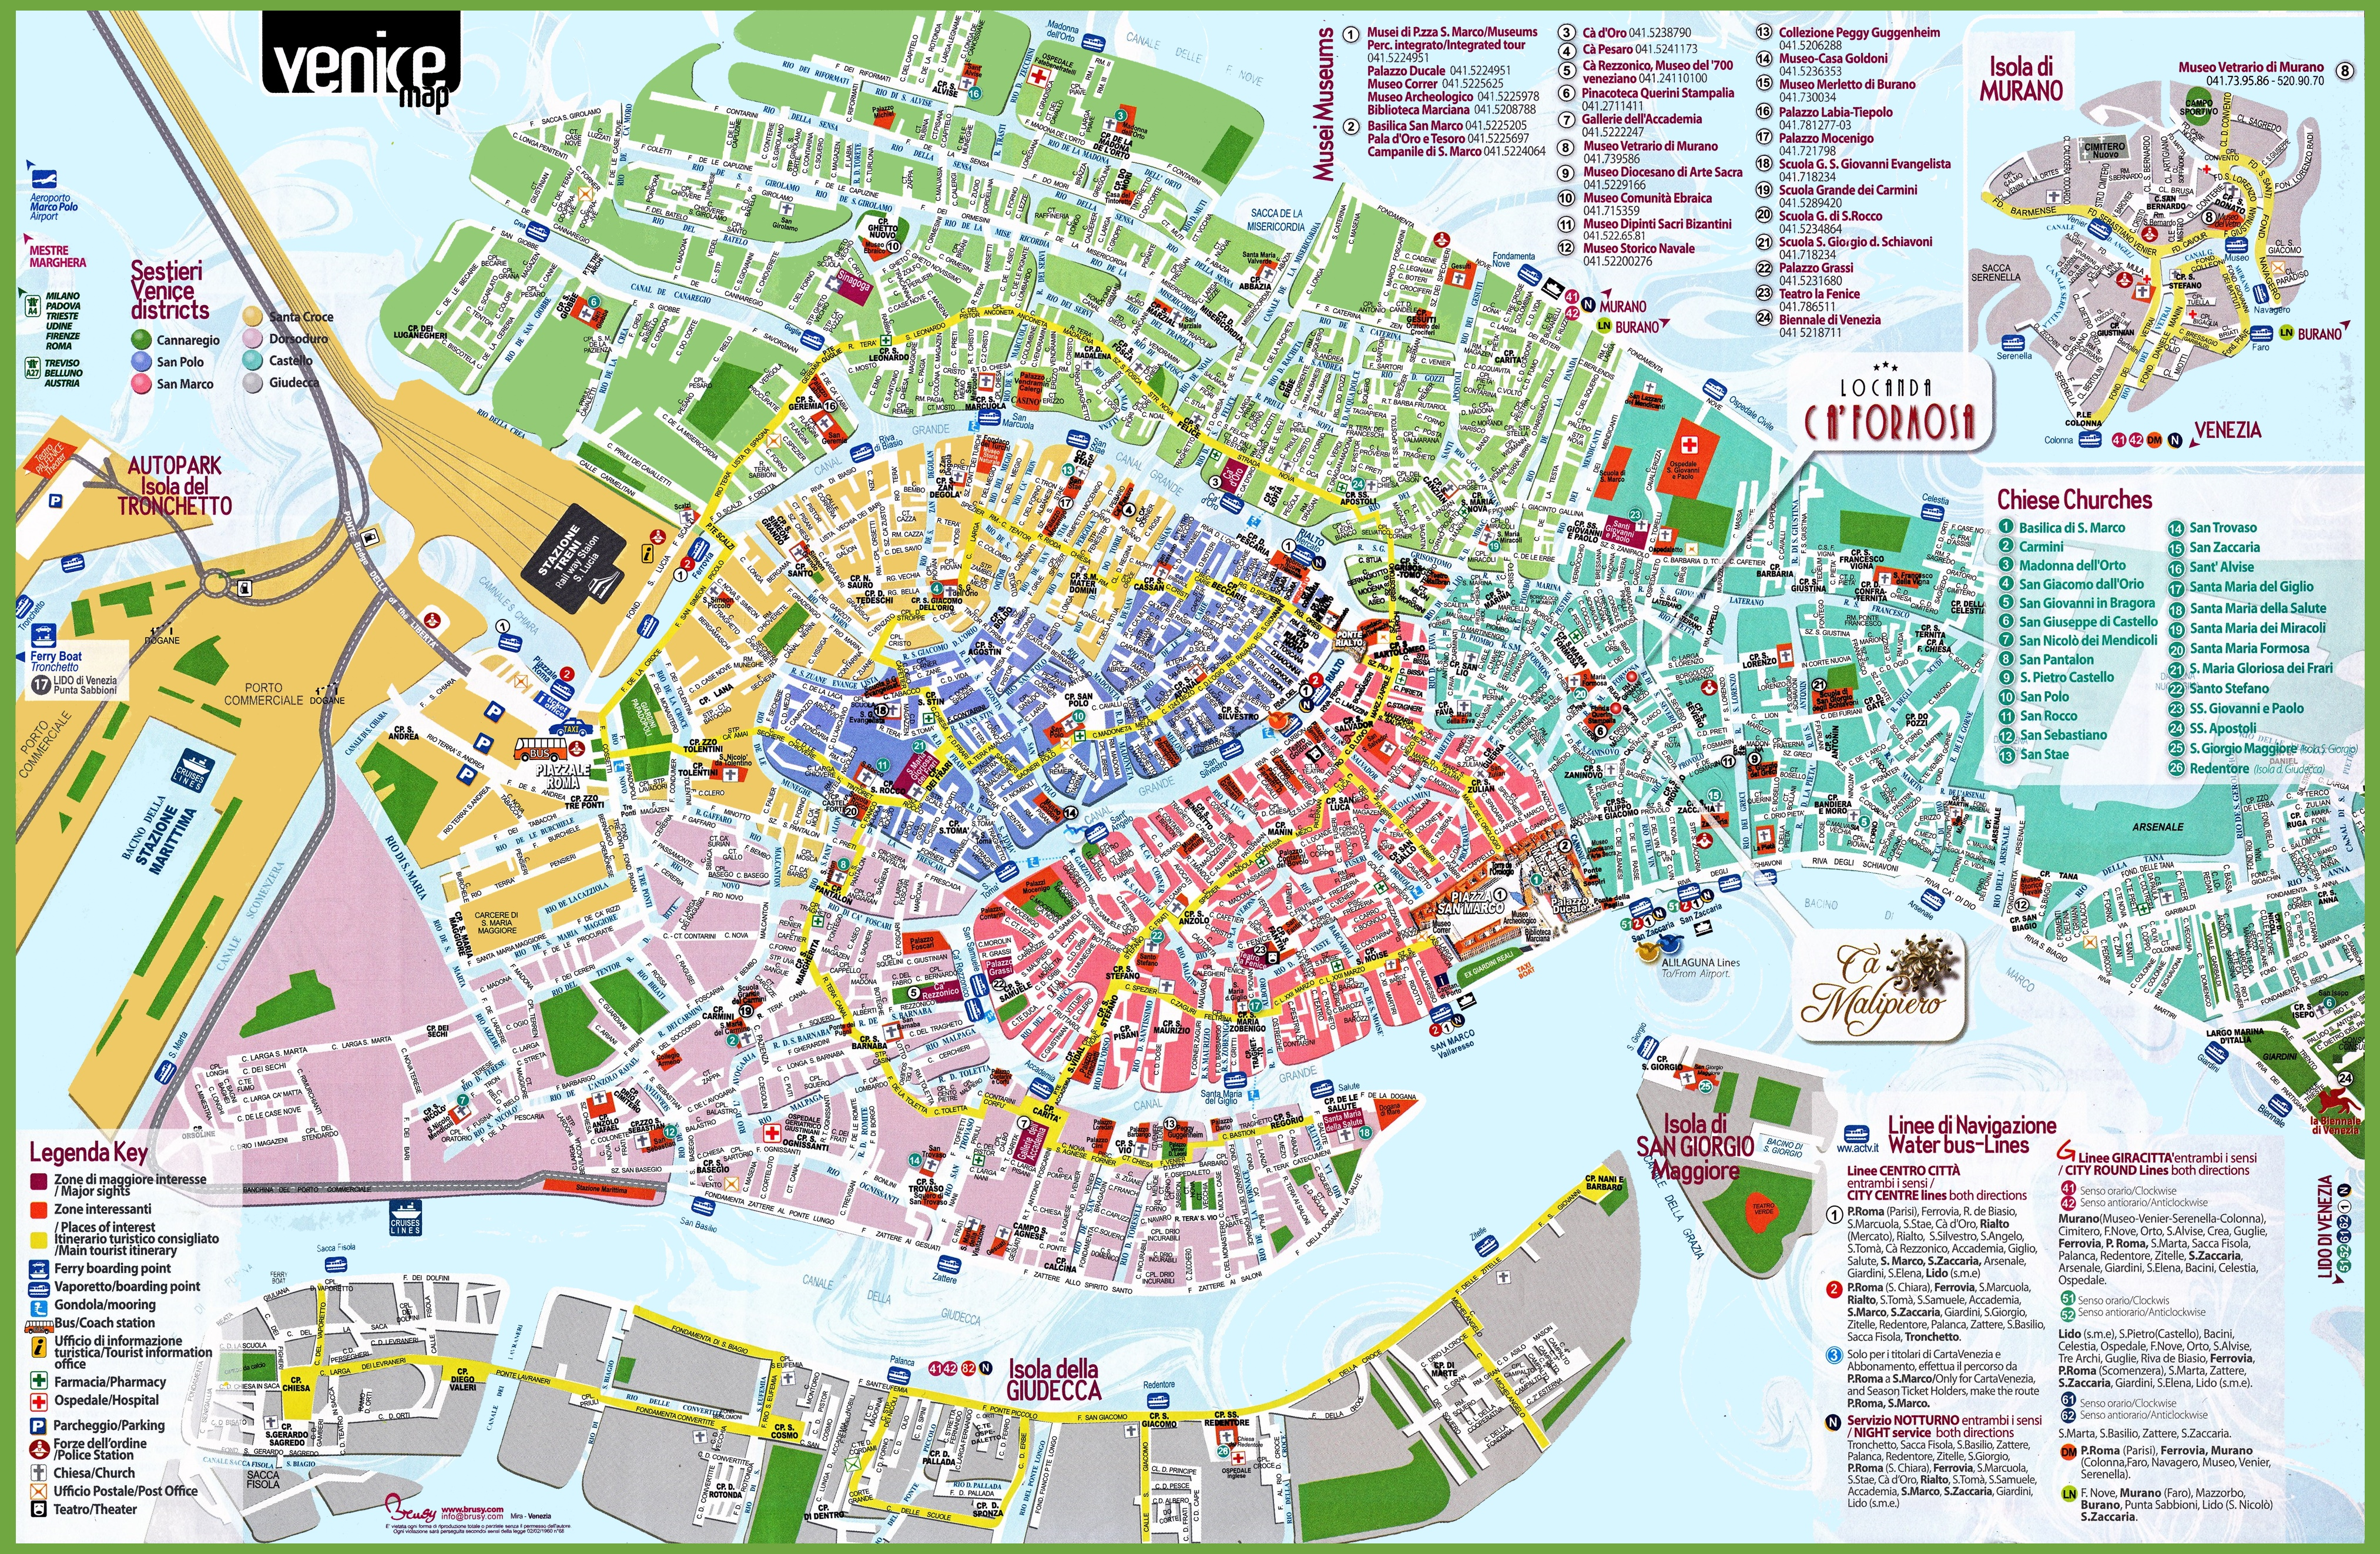 Map Of Venice Venice tourist attractions map Map Of Venice